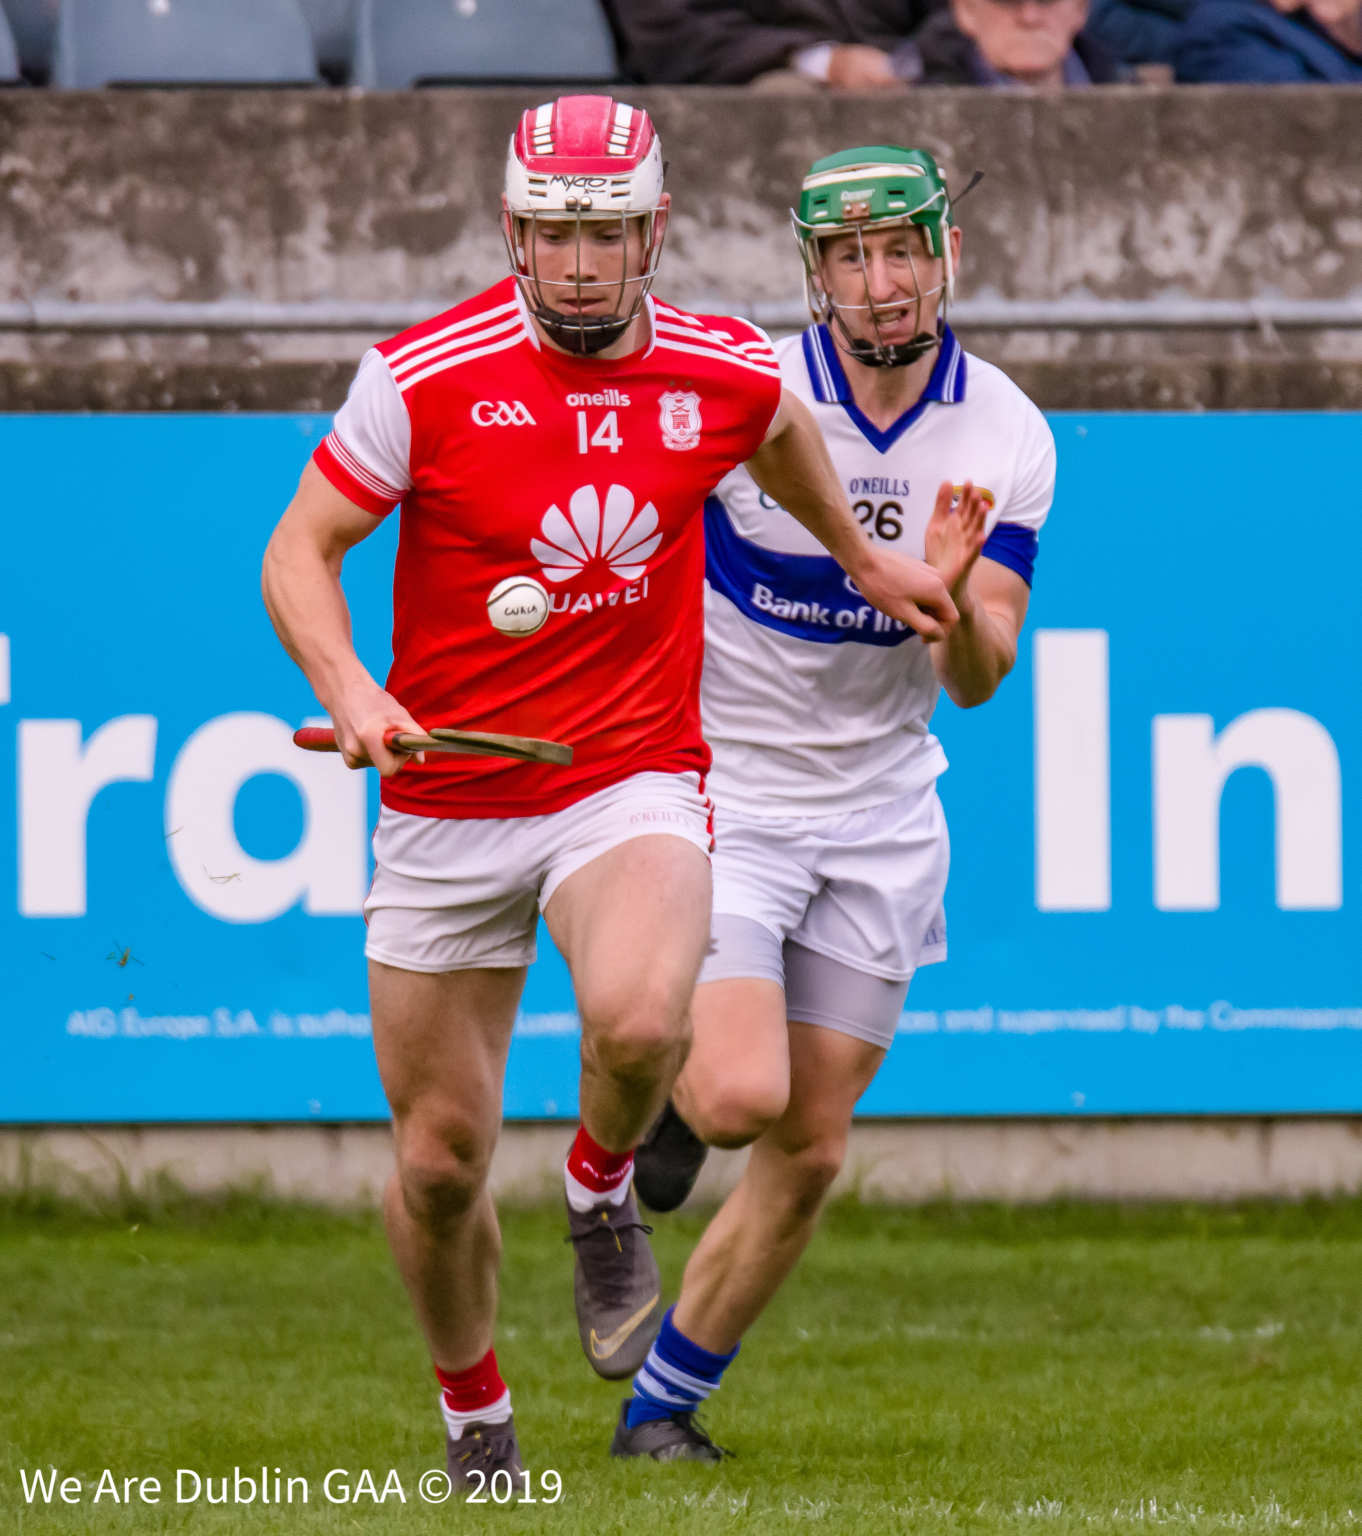 Con Of Callaghan in action against St Vincents in the Dublin SHC semi final which Cuala won with Mark Schutte top scoring with 1-03.